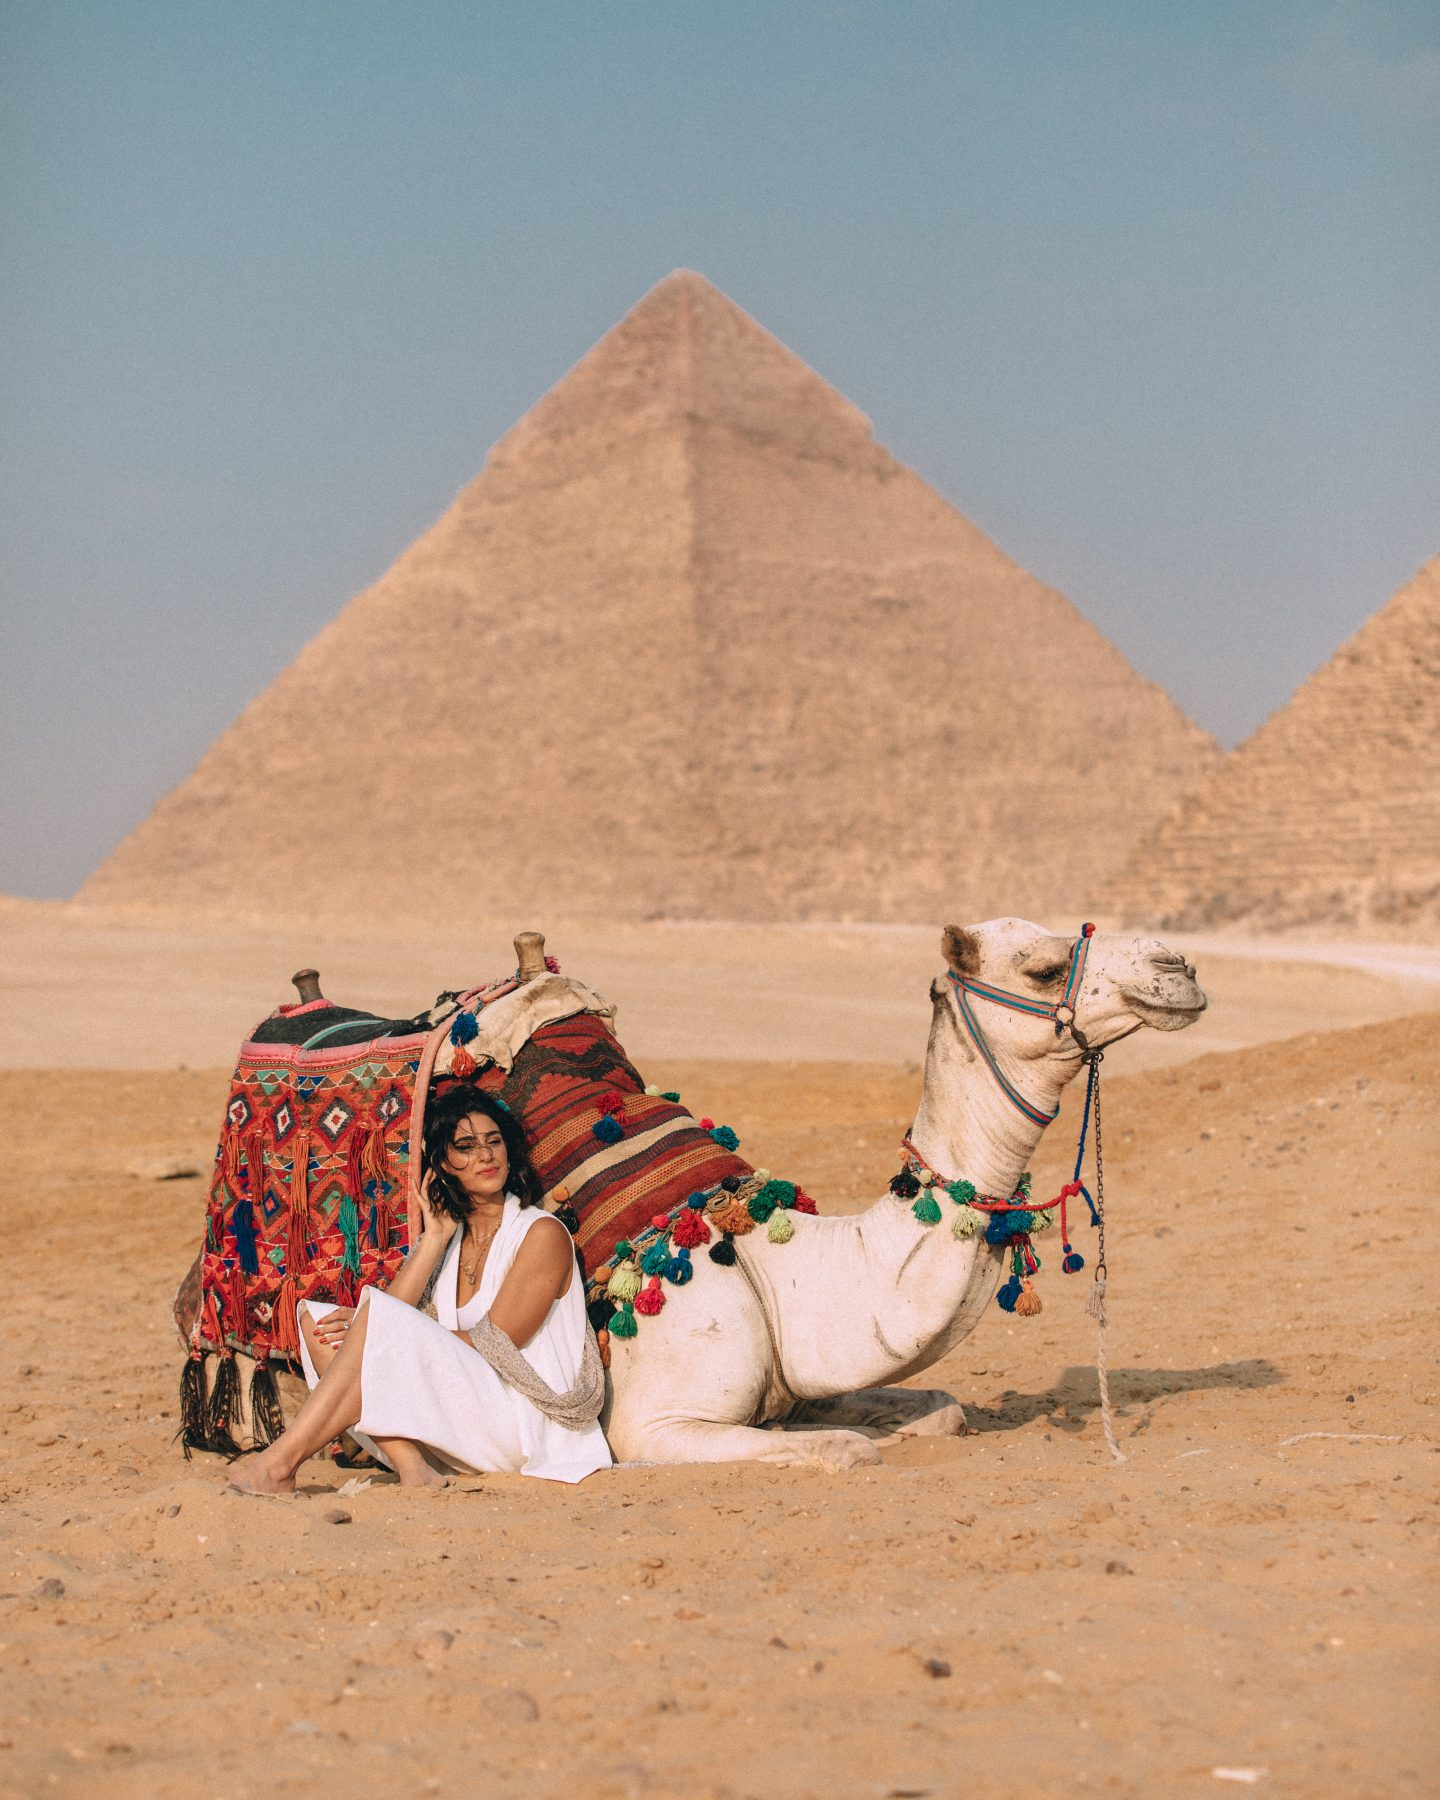 A woman sitting by a camel in front of the Great Pyramids of Giza in Cairo, Egypt